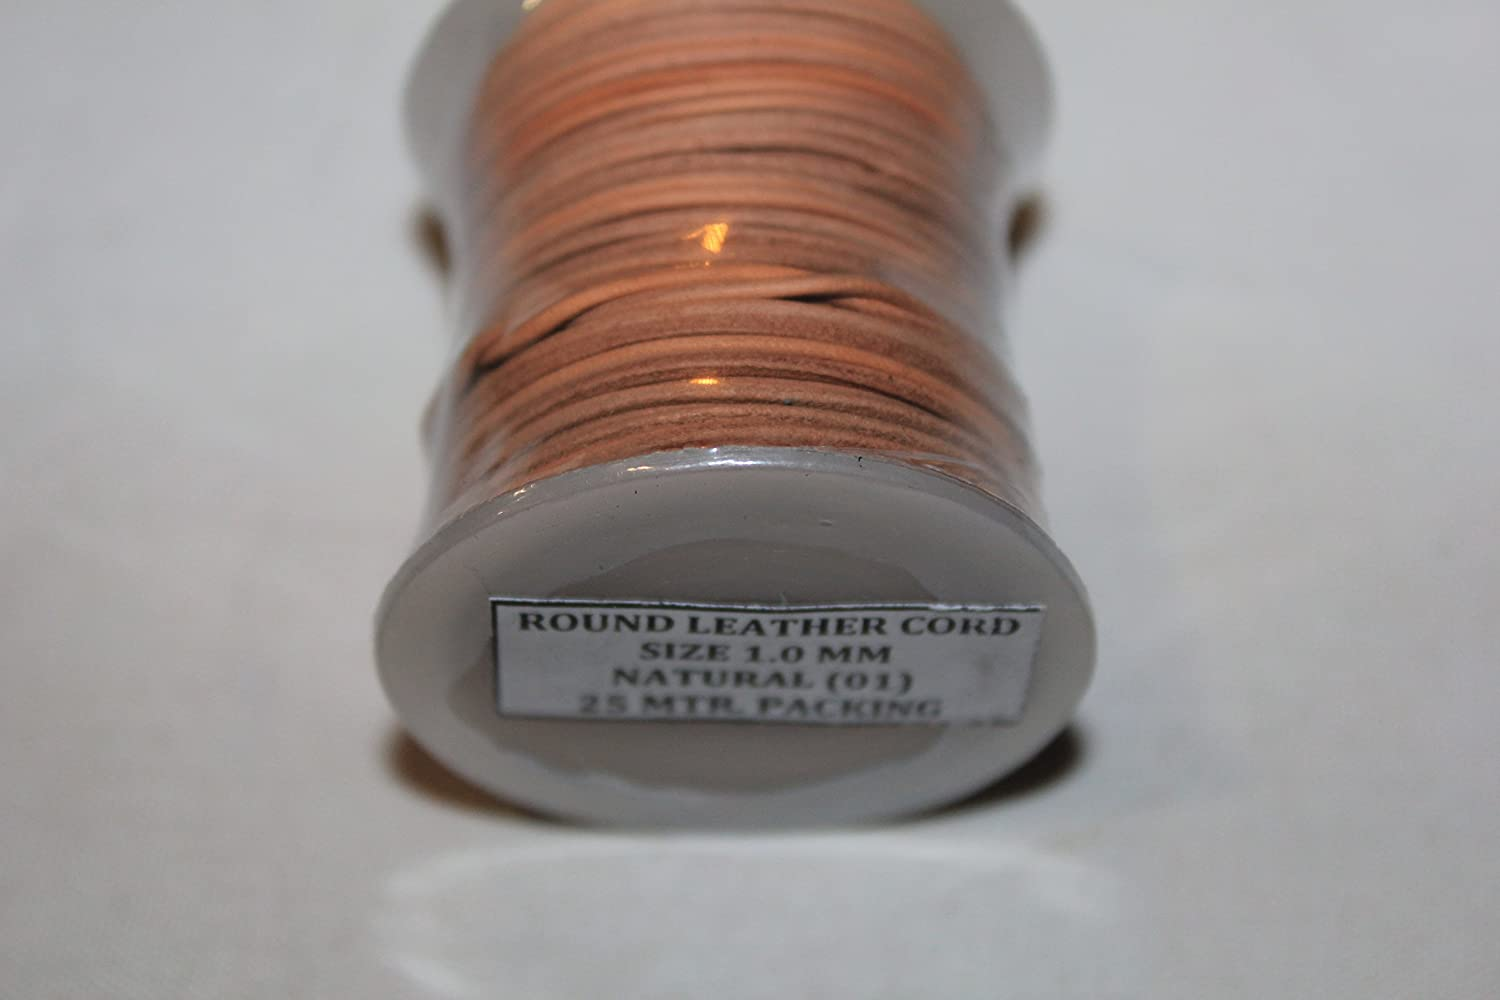 MIJ-1MM-403 Genuine Leather Cord Stressed Brown 1 mm Supple and Smooth -25 Meter // Spool Many Colors Soft